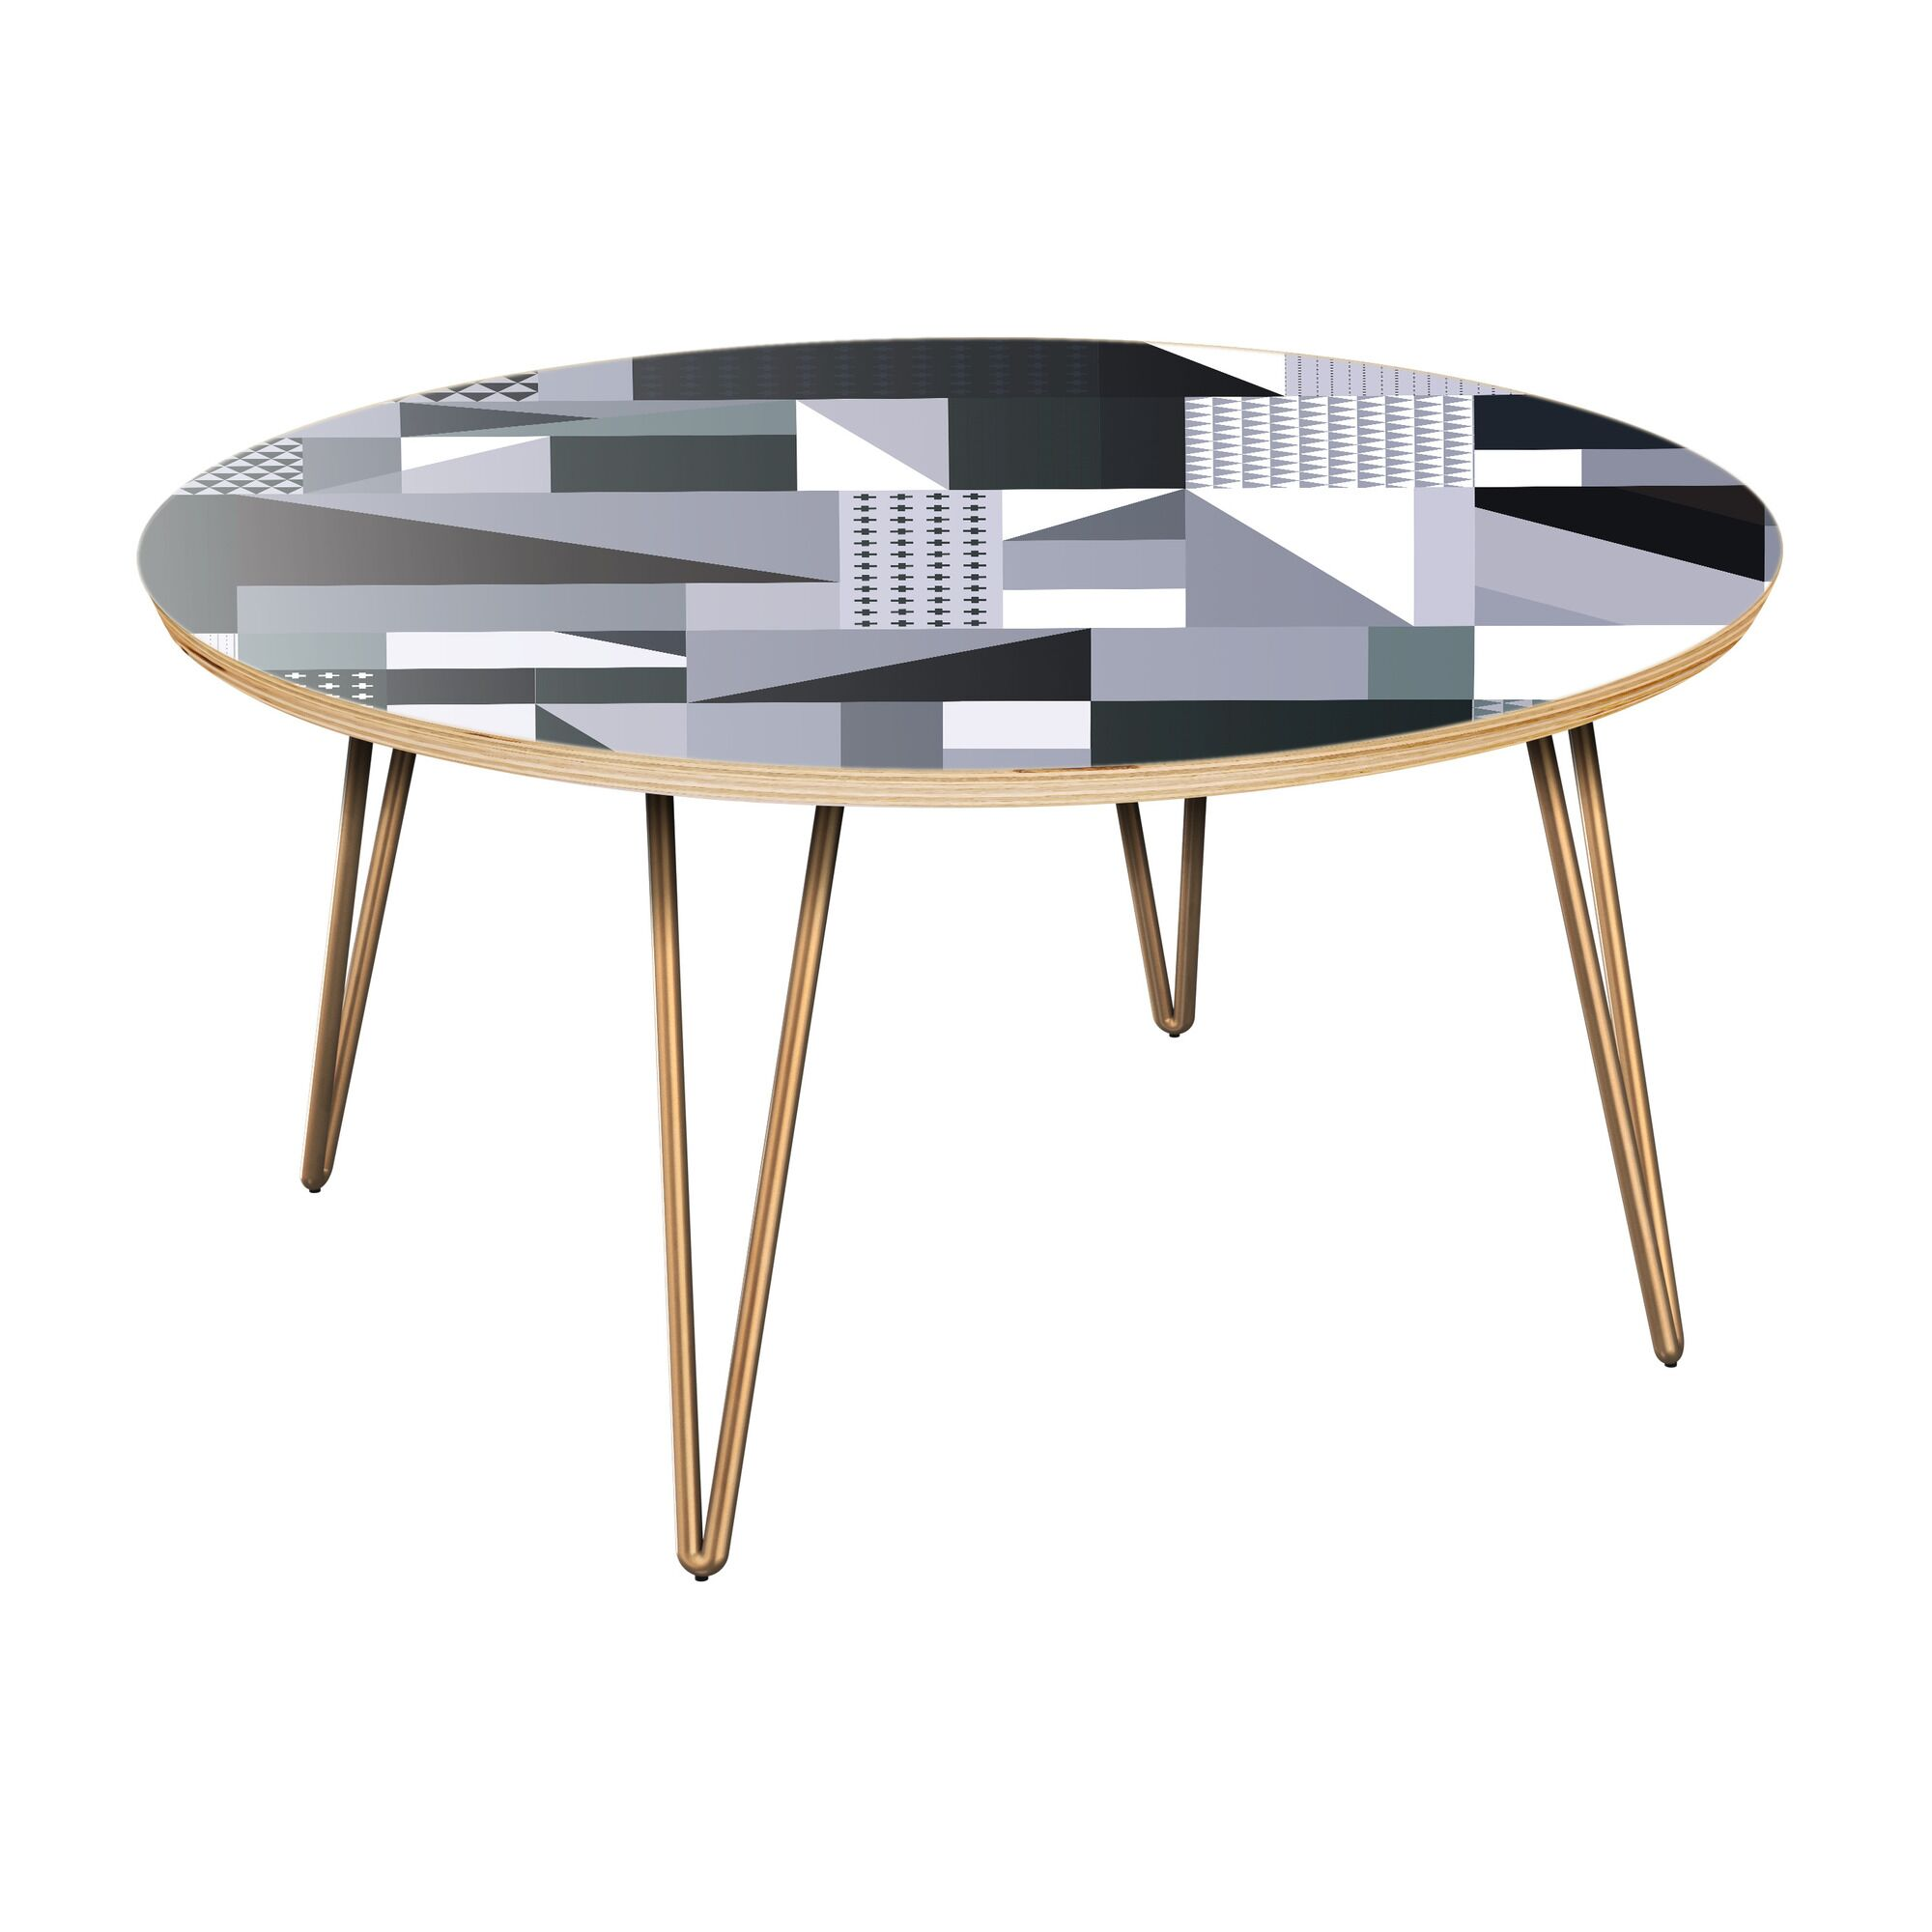 Inverness Coffee Table Table Top Color: Natural, Table Base Color: Brass